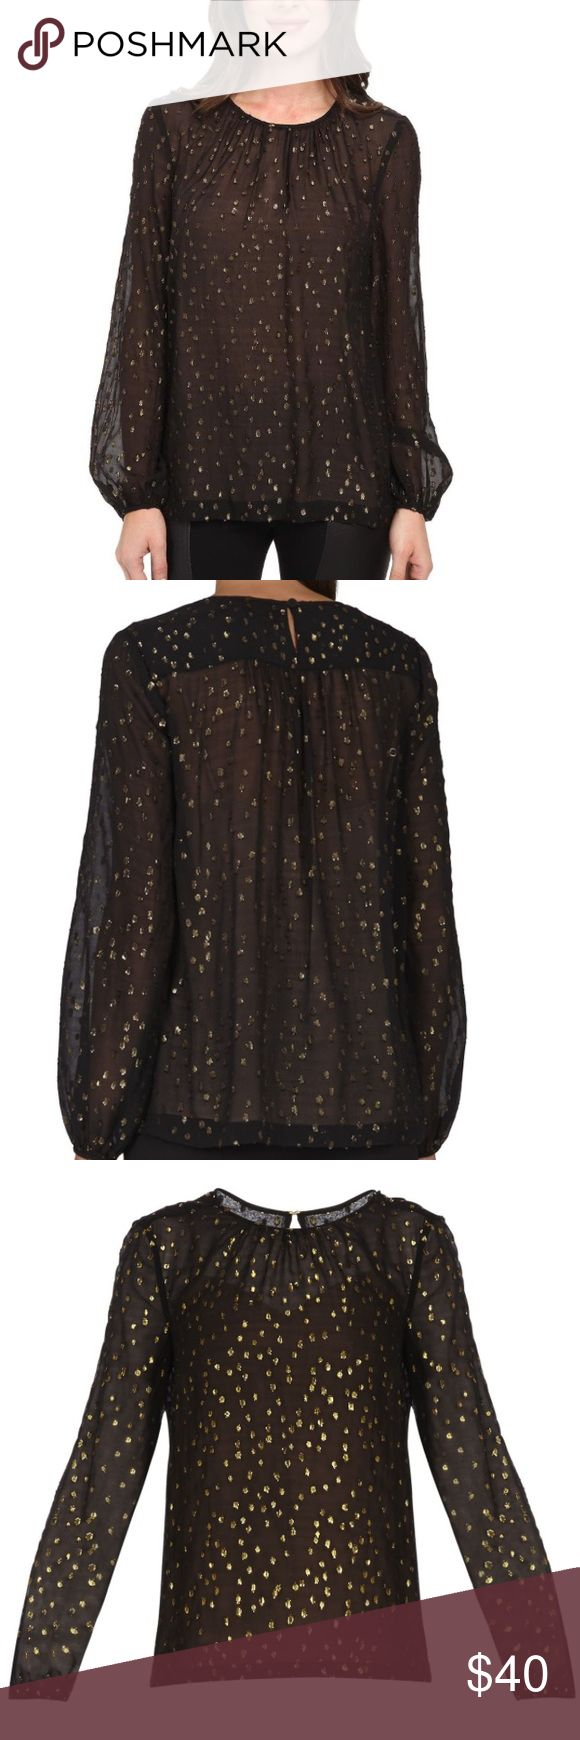 BCBG Martina Blouse sz M Black sheer top with gold flecks. Comes with nude cami to wear underneath. Worn only once and in like new condition. BCBGMaxAzria Tops Blouses